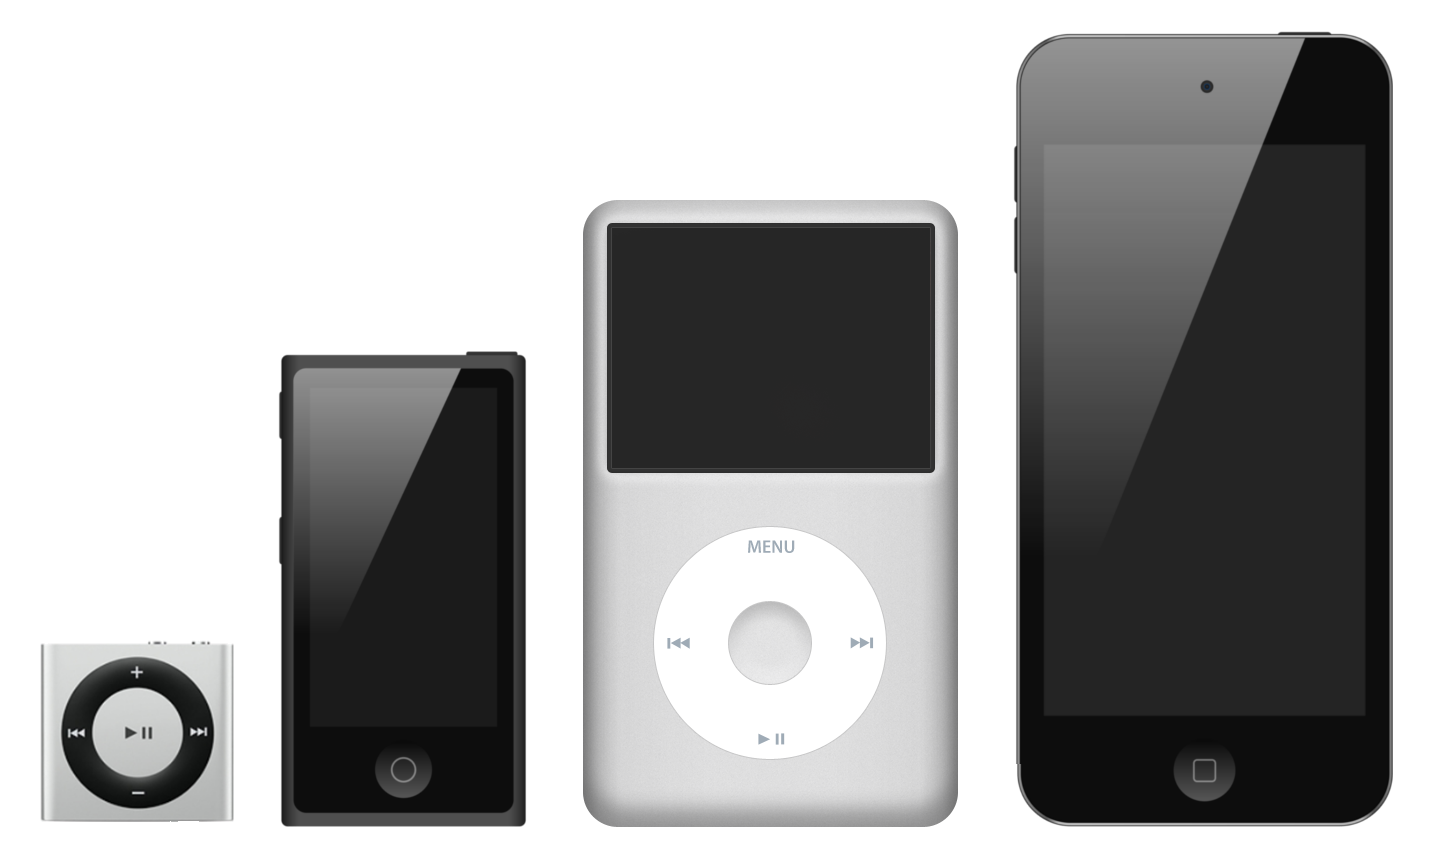 ipod-shuffle-nano-classic-touch-family-photo-combined